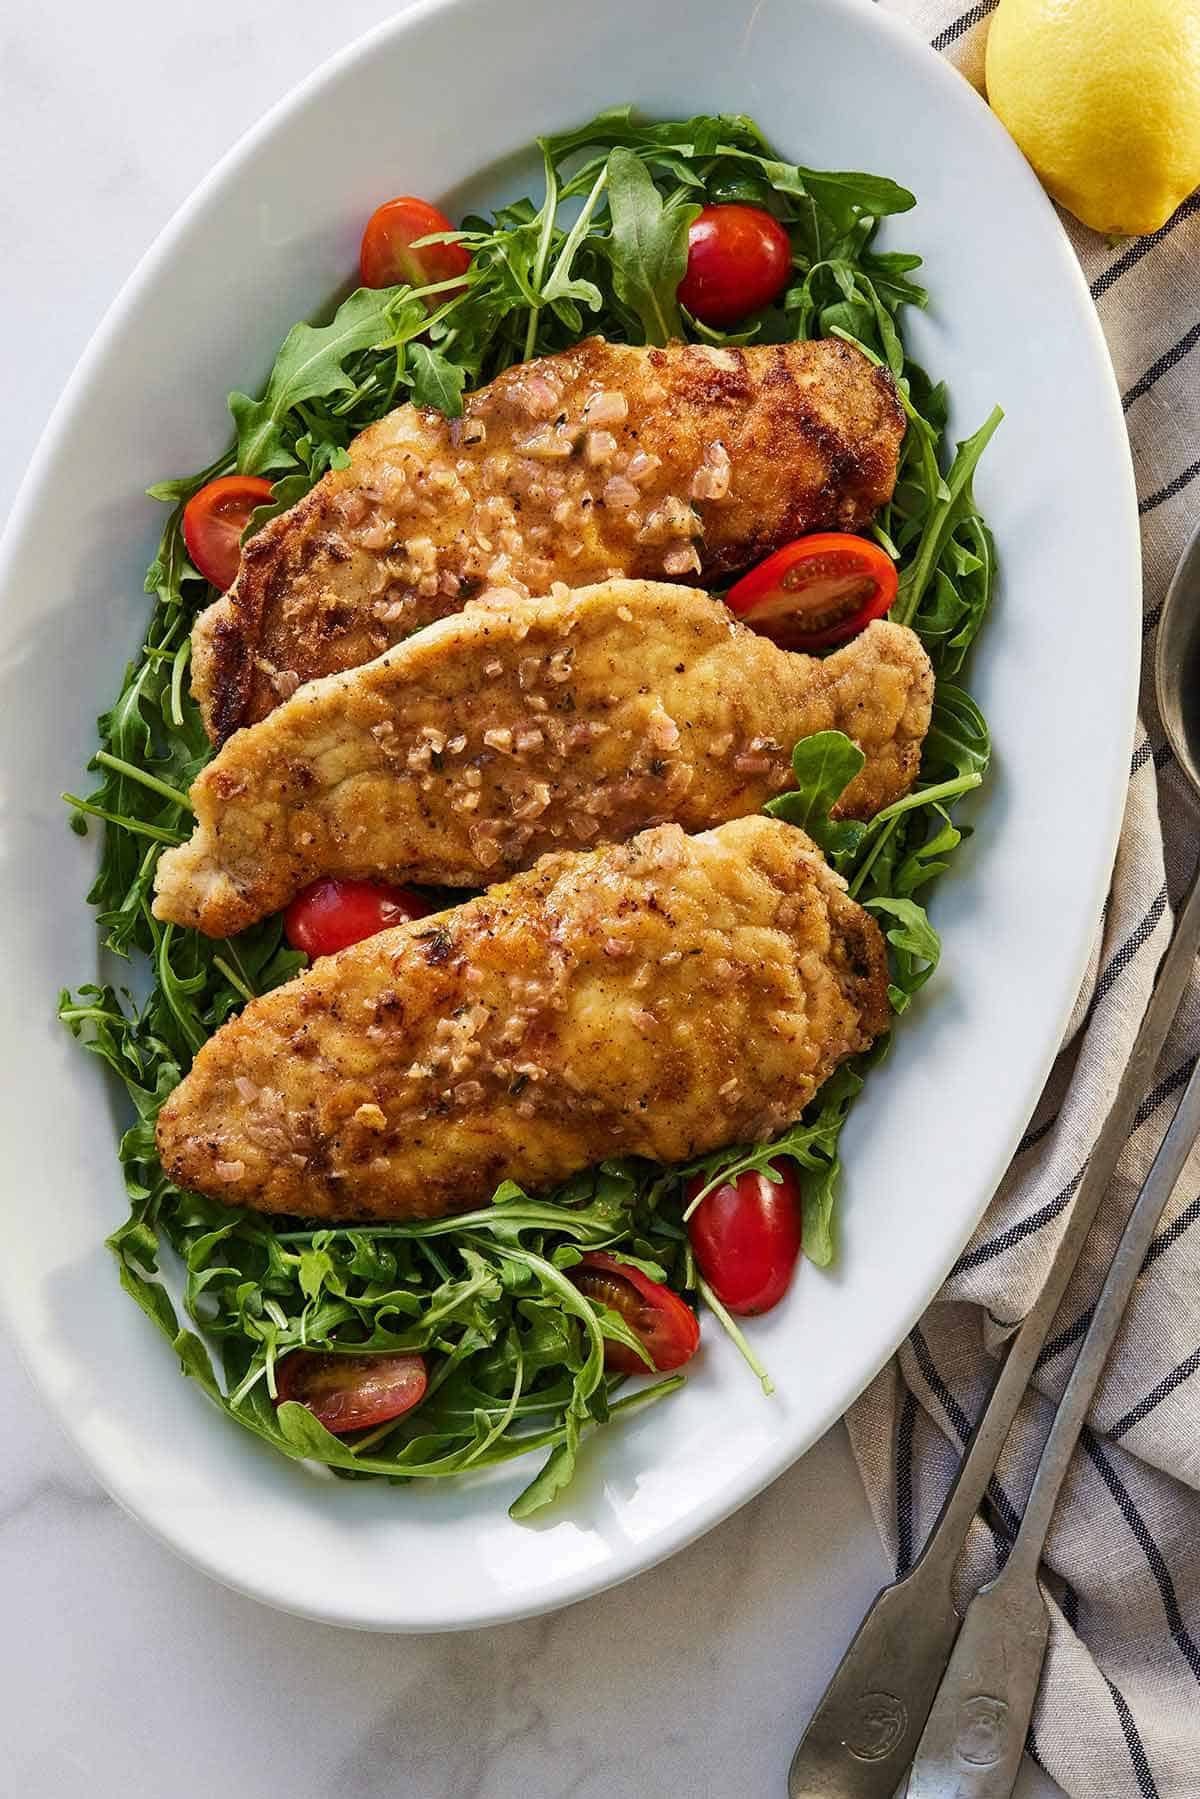 A platter of three chicken paillard overtop of a bed of arugula and cherry tomatoes.